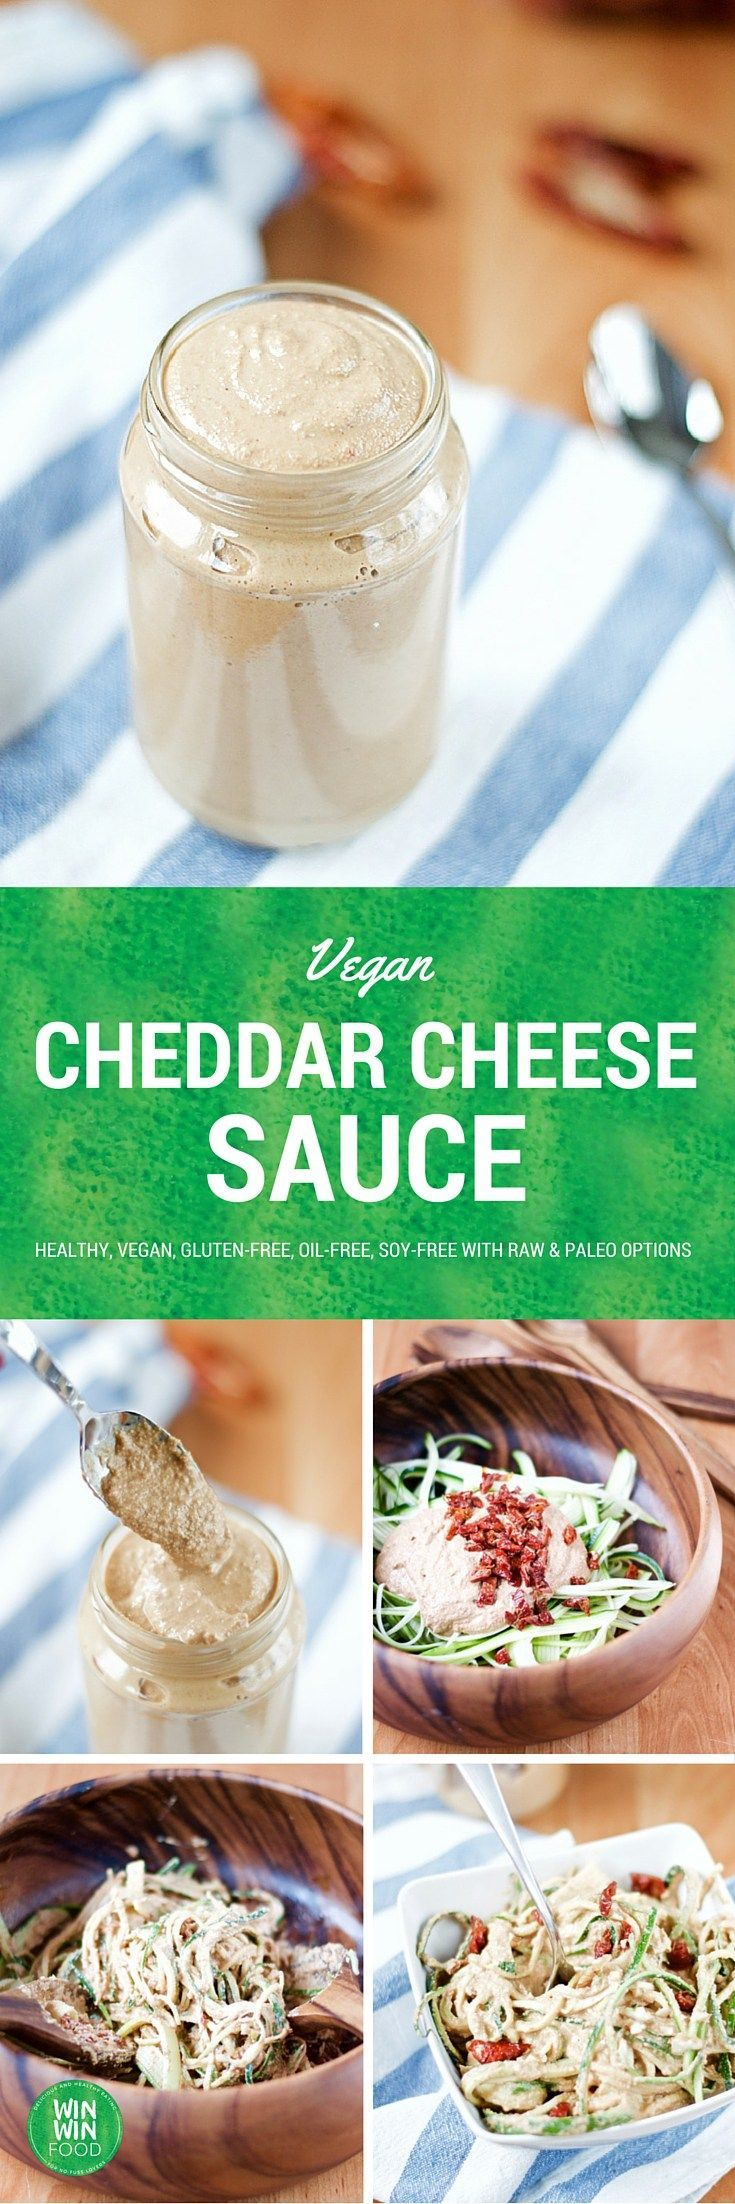 Vegan Cheddar Cheese Sauce | WIN-WINFOOD.com #healthy #vegan #glutenfree #oilfree #soyfree with #raw and #paleo options